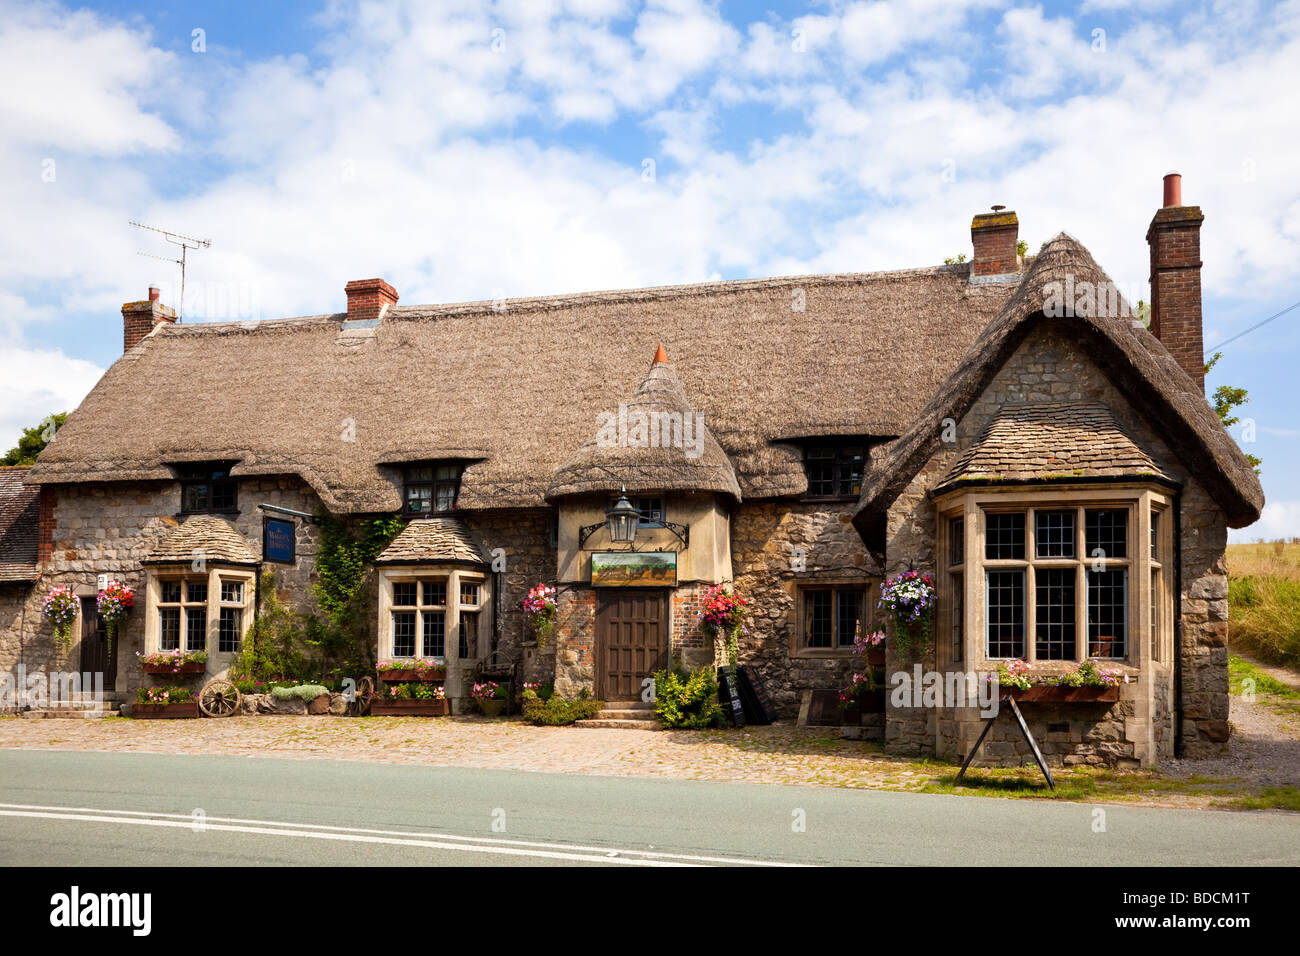 Traditional English thatched country pub, village pub - The Waggon and Horses, Beckhampton, Marlborough, Wiltshire, - Stock Image